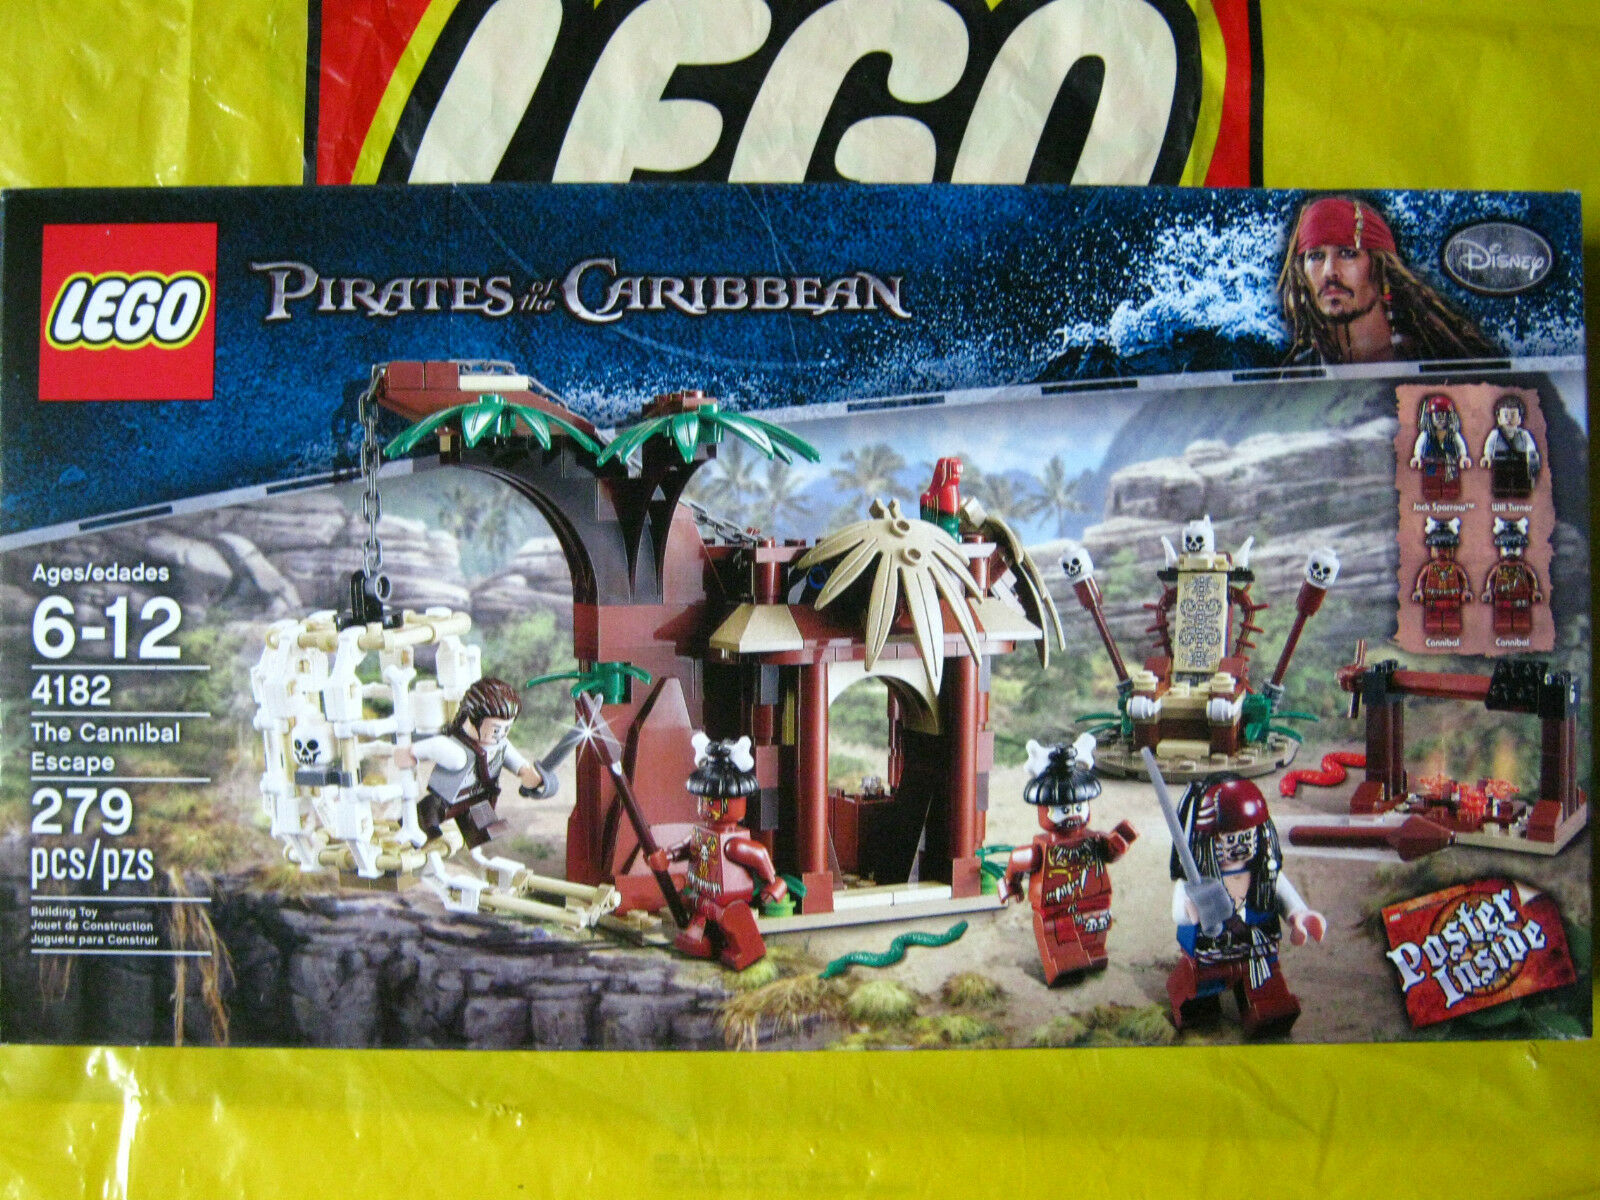 Lego Pirates of the Caribbean The The The Cannibal Escape 4182 New & Sealed da9b5c